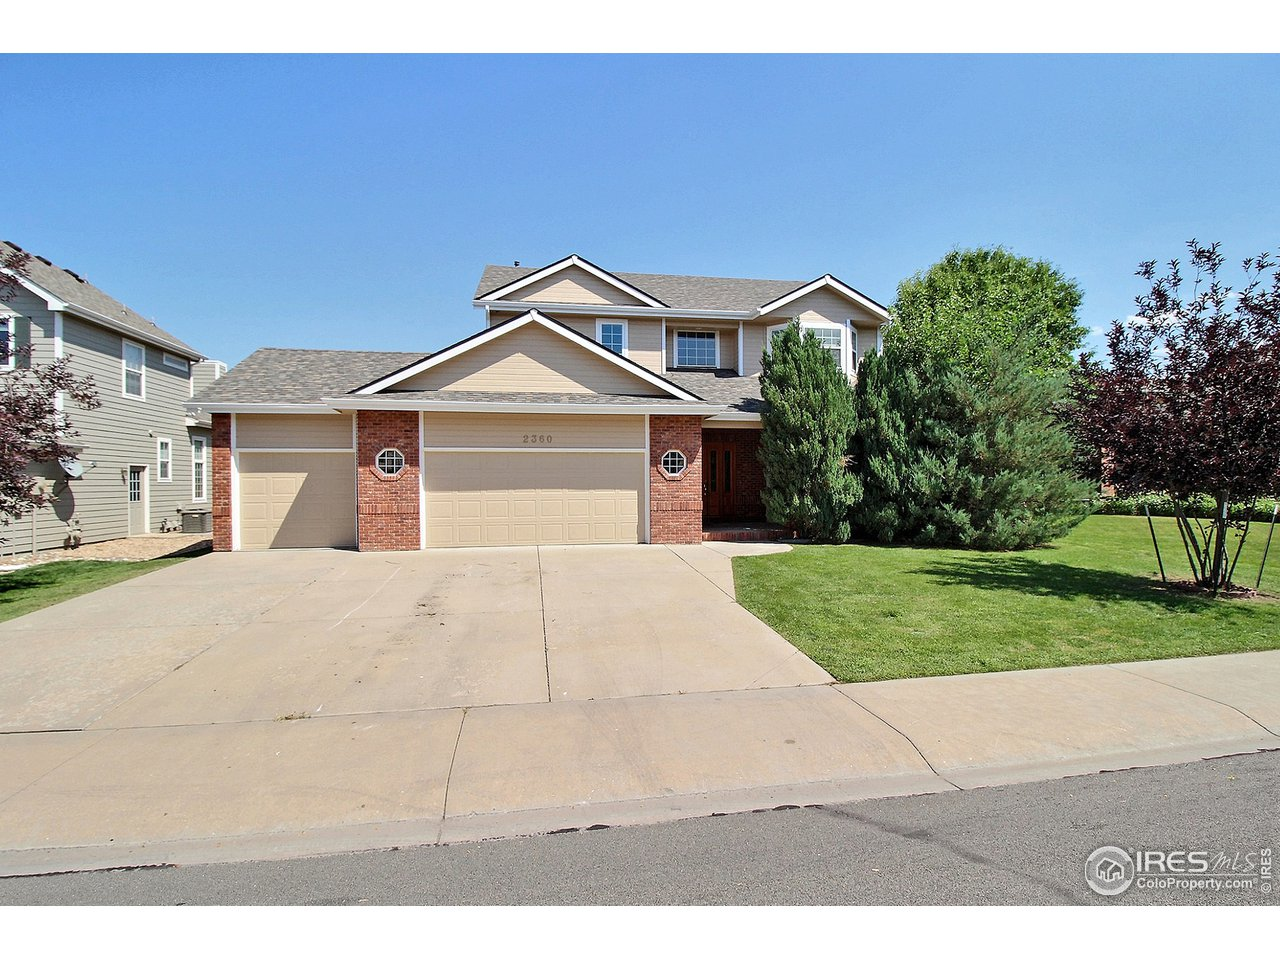 2360 42nd Ave Ct, Greeley CO 80634